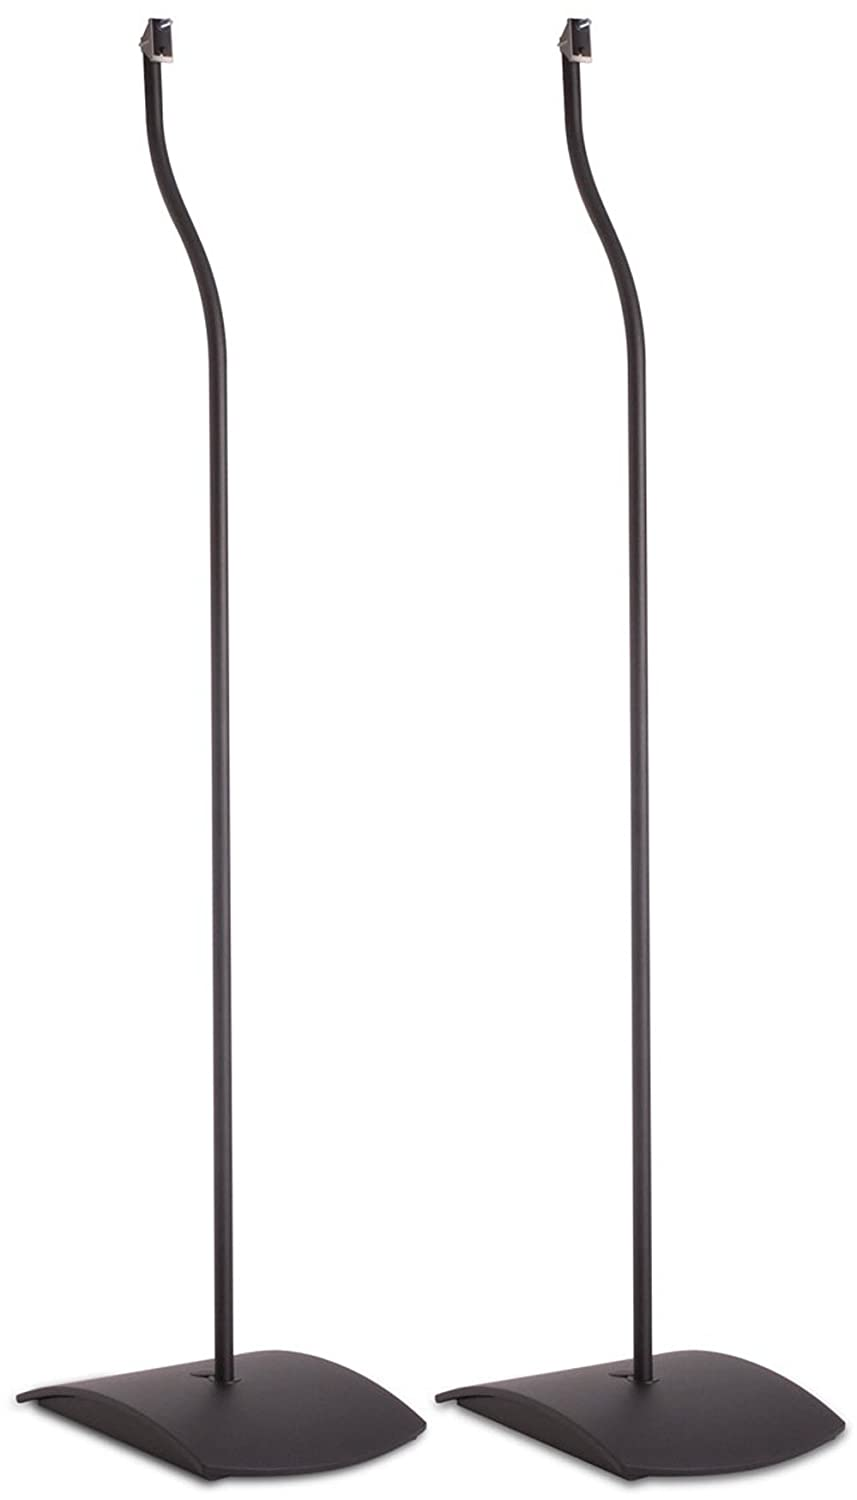 Bose Ufs 20 Series Ii Universal Floor Stands Home Audio Soundtouch 300 With Acoustimass Plus Virtually Invisible Theater